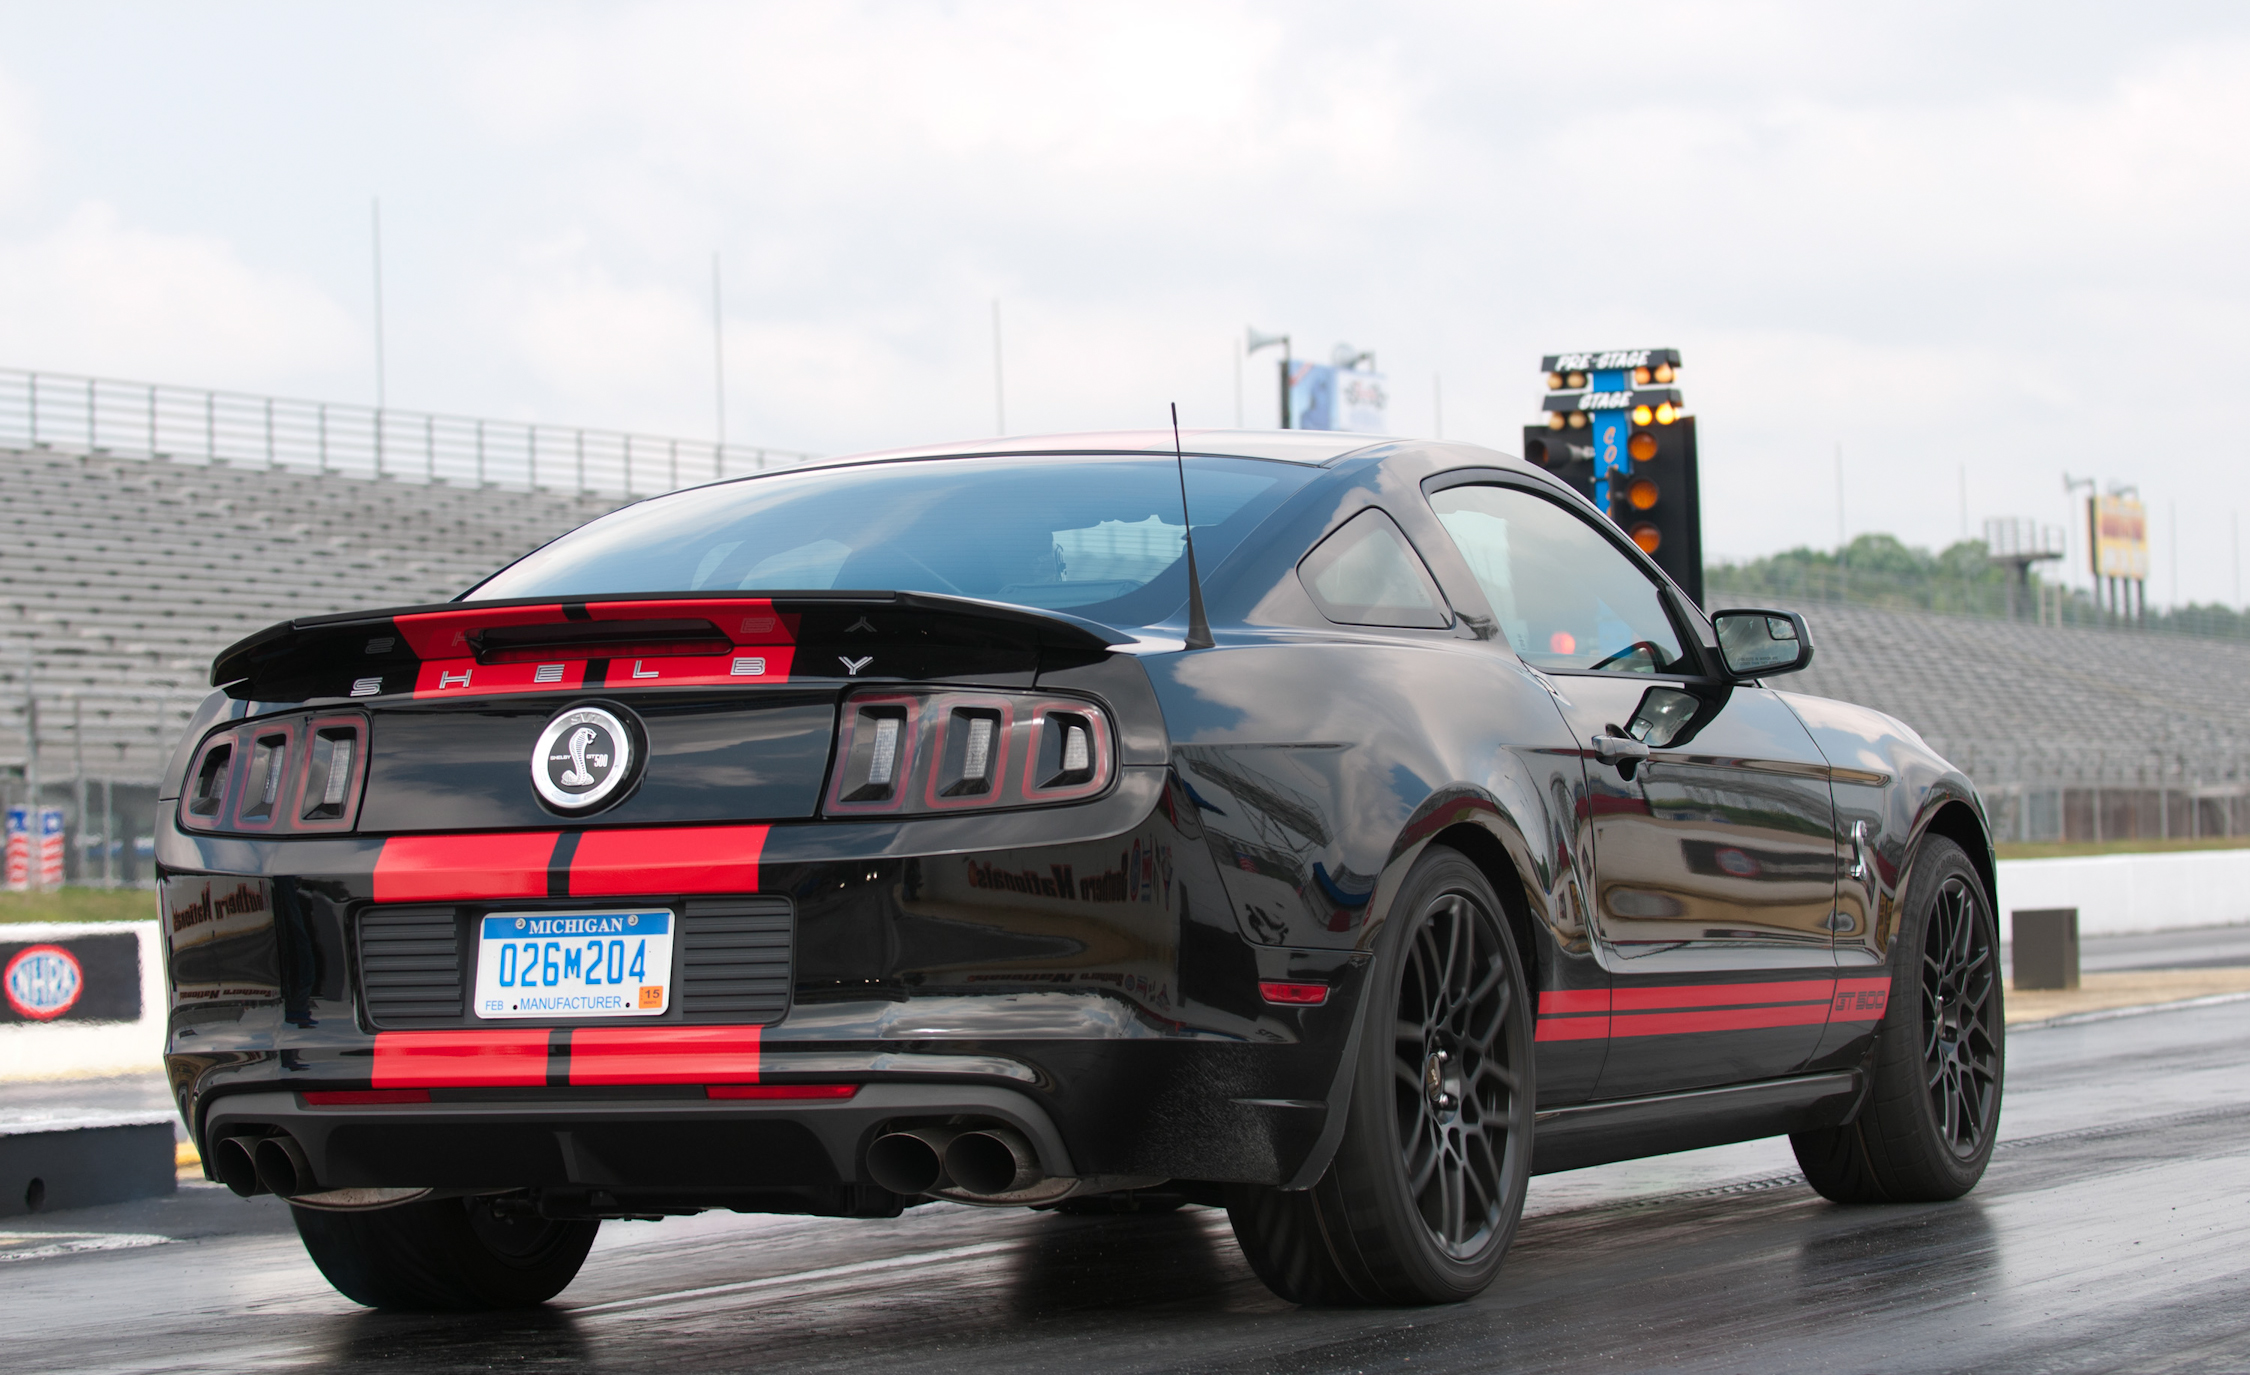 2013 Ford Shelby GT500 Black Rear View (Photo 42 of 47)